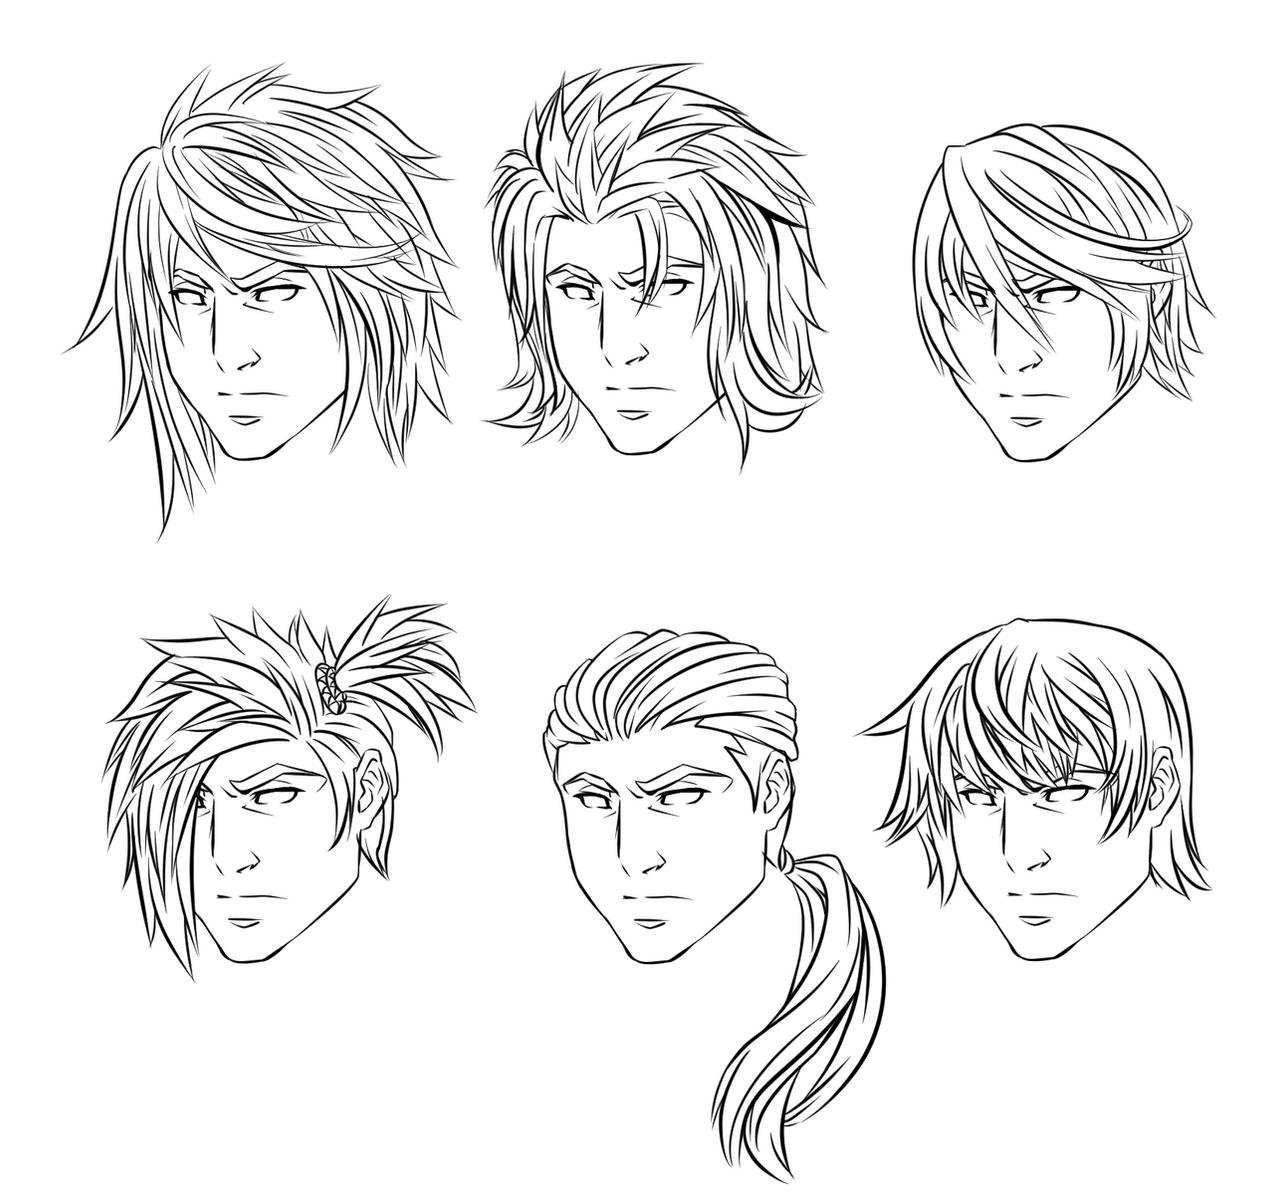 male anime hair styles anime hairstyles by crimsoncypher on deviantart 3083 | anime male hairstyles by crimsoncypher d8j1x8t